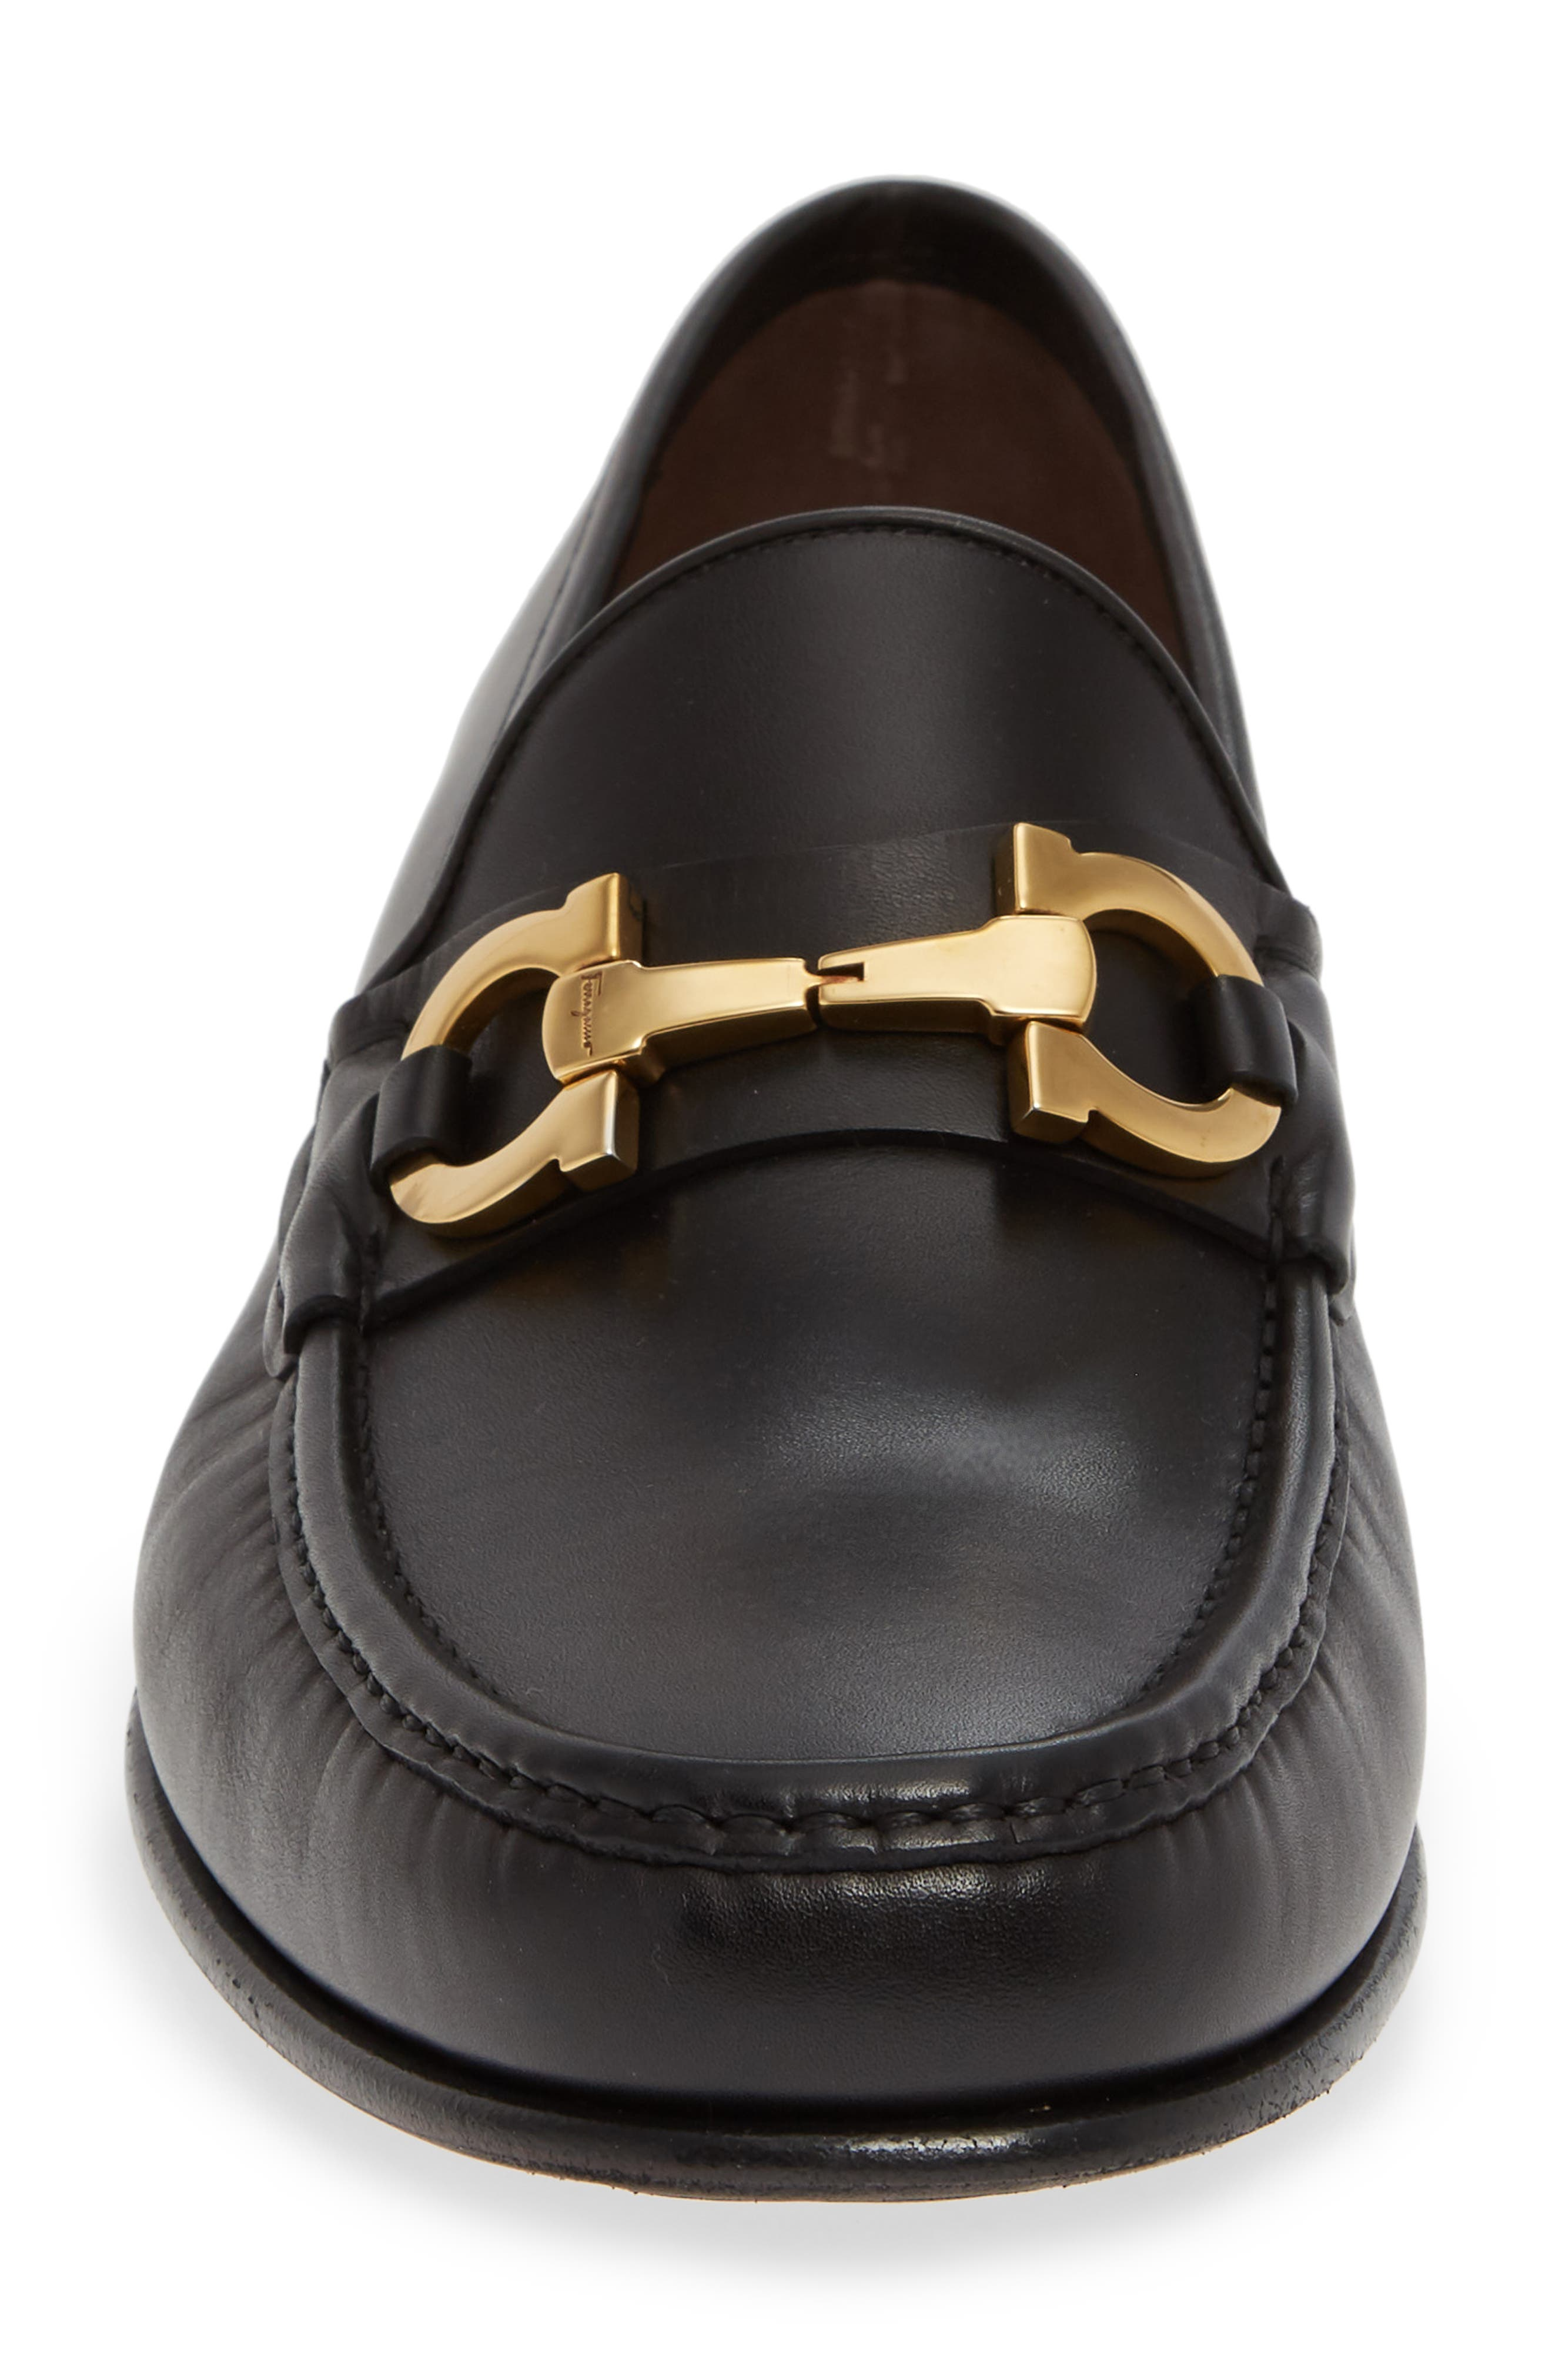 Bond Bitted Moc Loafer,                             Alternate thumbnail 4, color,                             NERO LEATHER